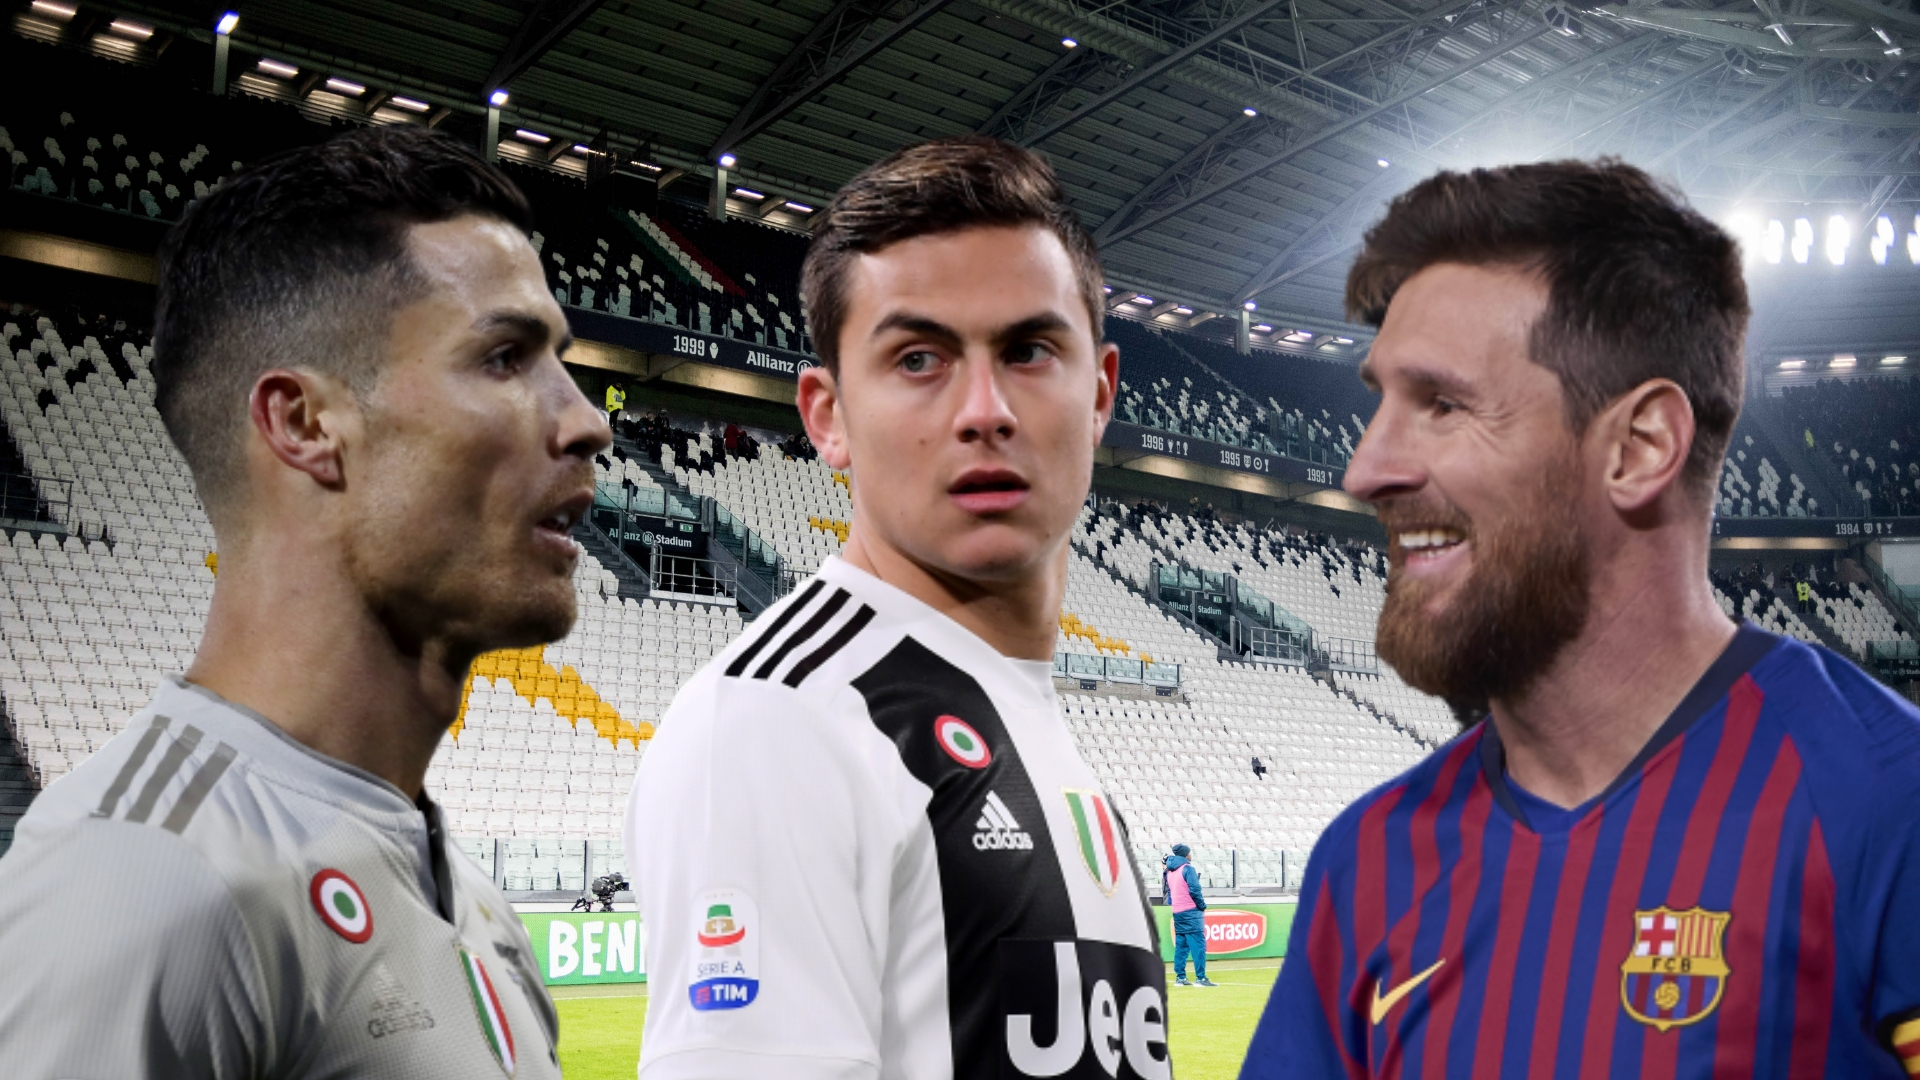 What Paulo Dybala Said On Lionel Messi And Cristiano Ronaldo After Playing With Them Sportbible